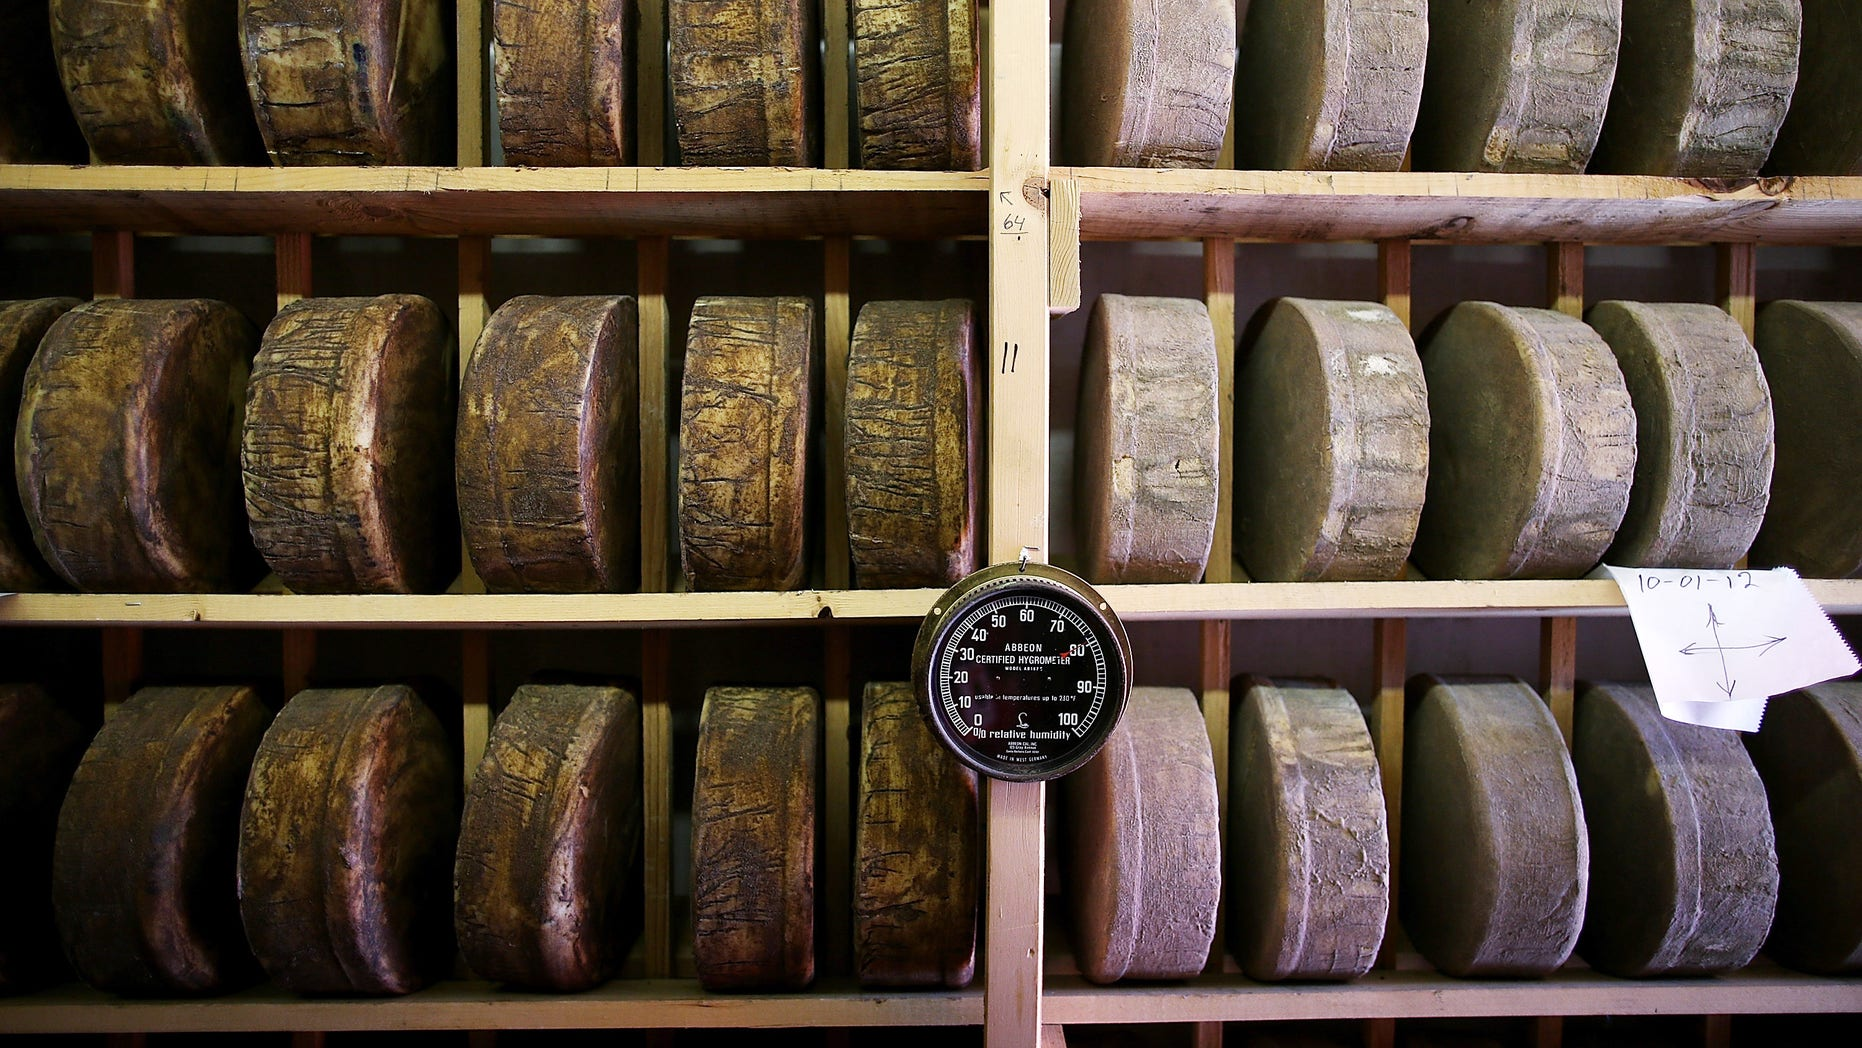 SONOMA, CA - JUNE 10:  Wheels of jack cheese age on wooden racks in a cooler at Vella Cheese on June 10, 2014 in Sonoma, California. The Food and Drug Administration (FDA) has issued an executive decree to ban the use of wooden boards to age cheese, a move that could be a huge blow to artisan cheesamkers who use wooden racks to age their non-processed cheese.  (Photo by Justin Sullivan/Getty Images)